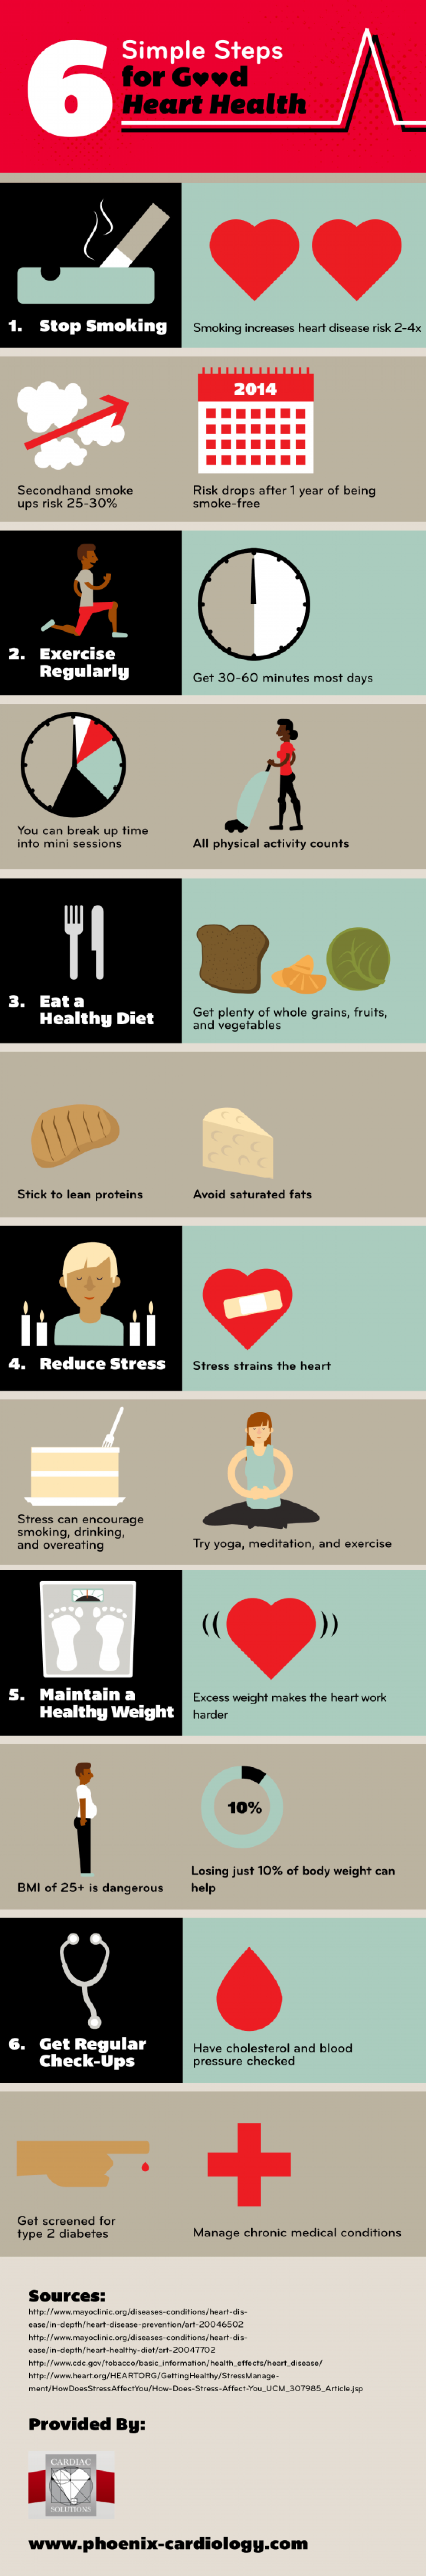 6 Simple Steps for Good Heart Health Infographic